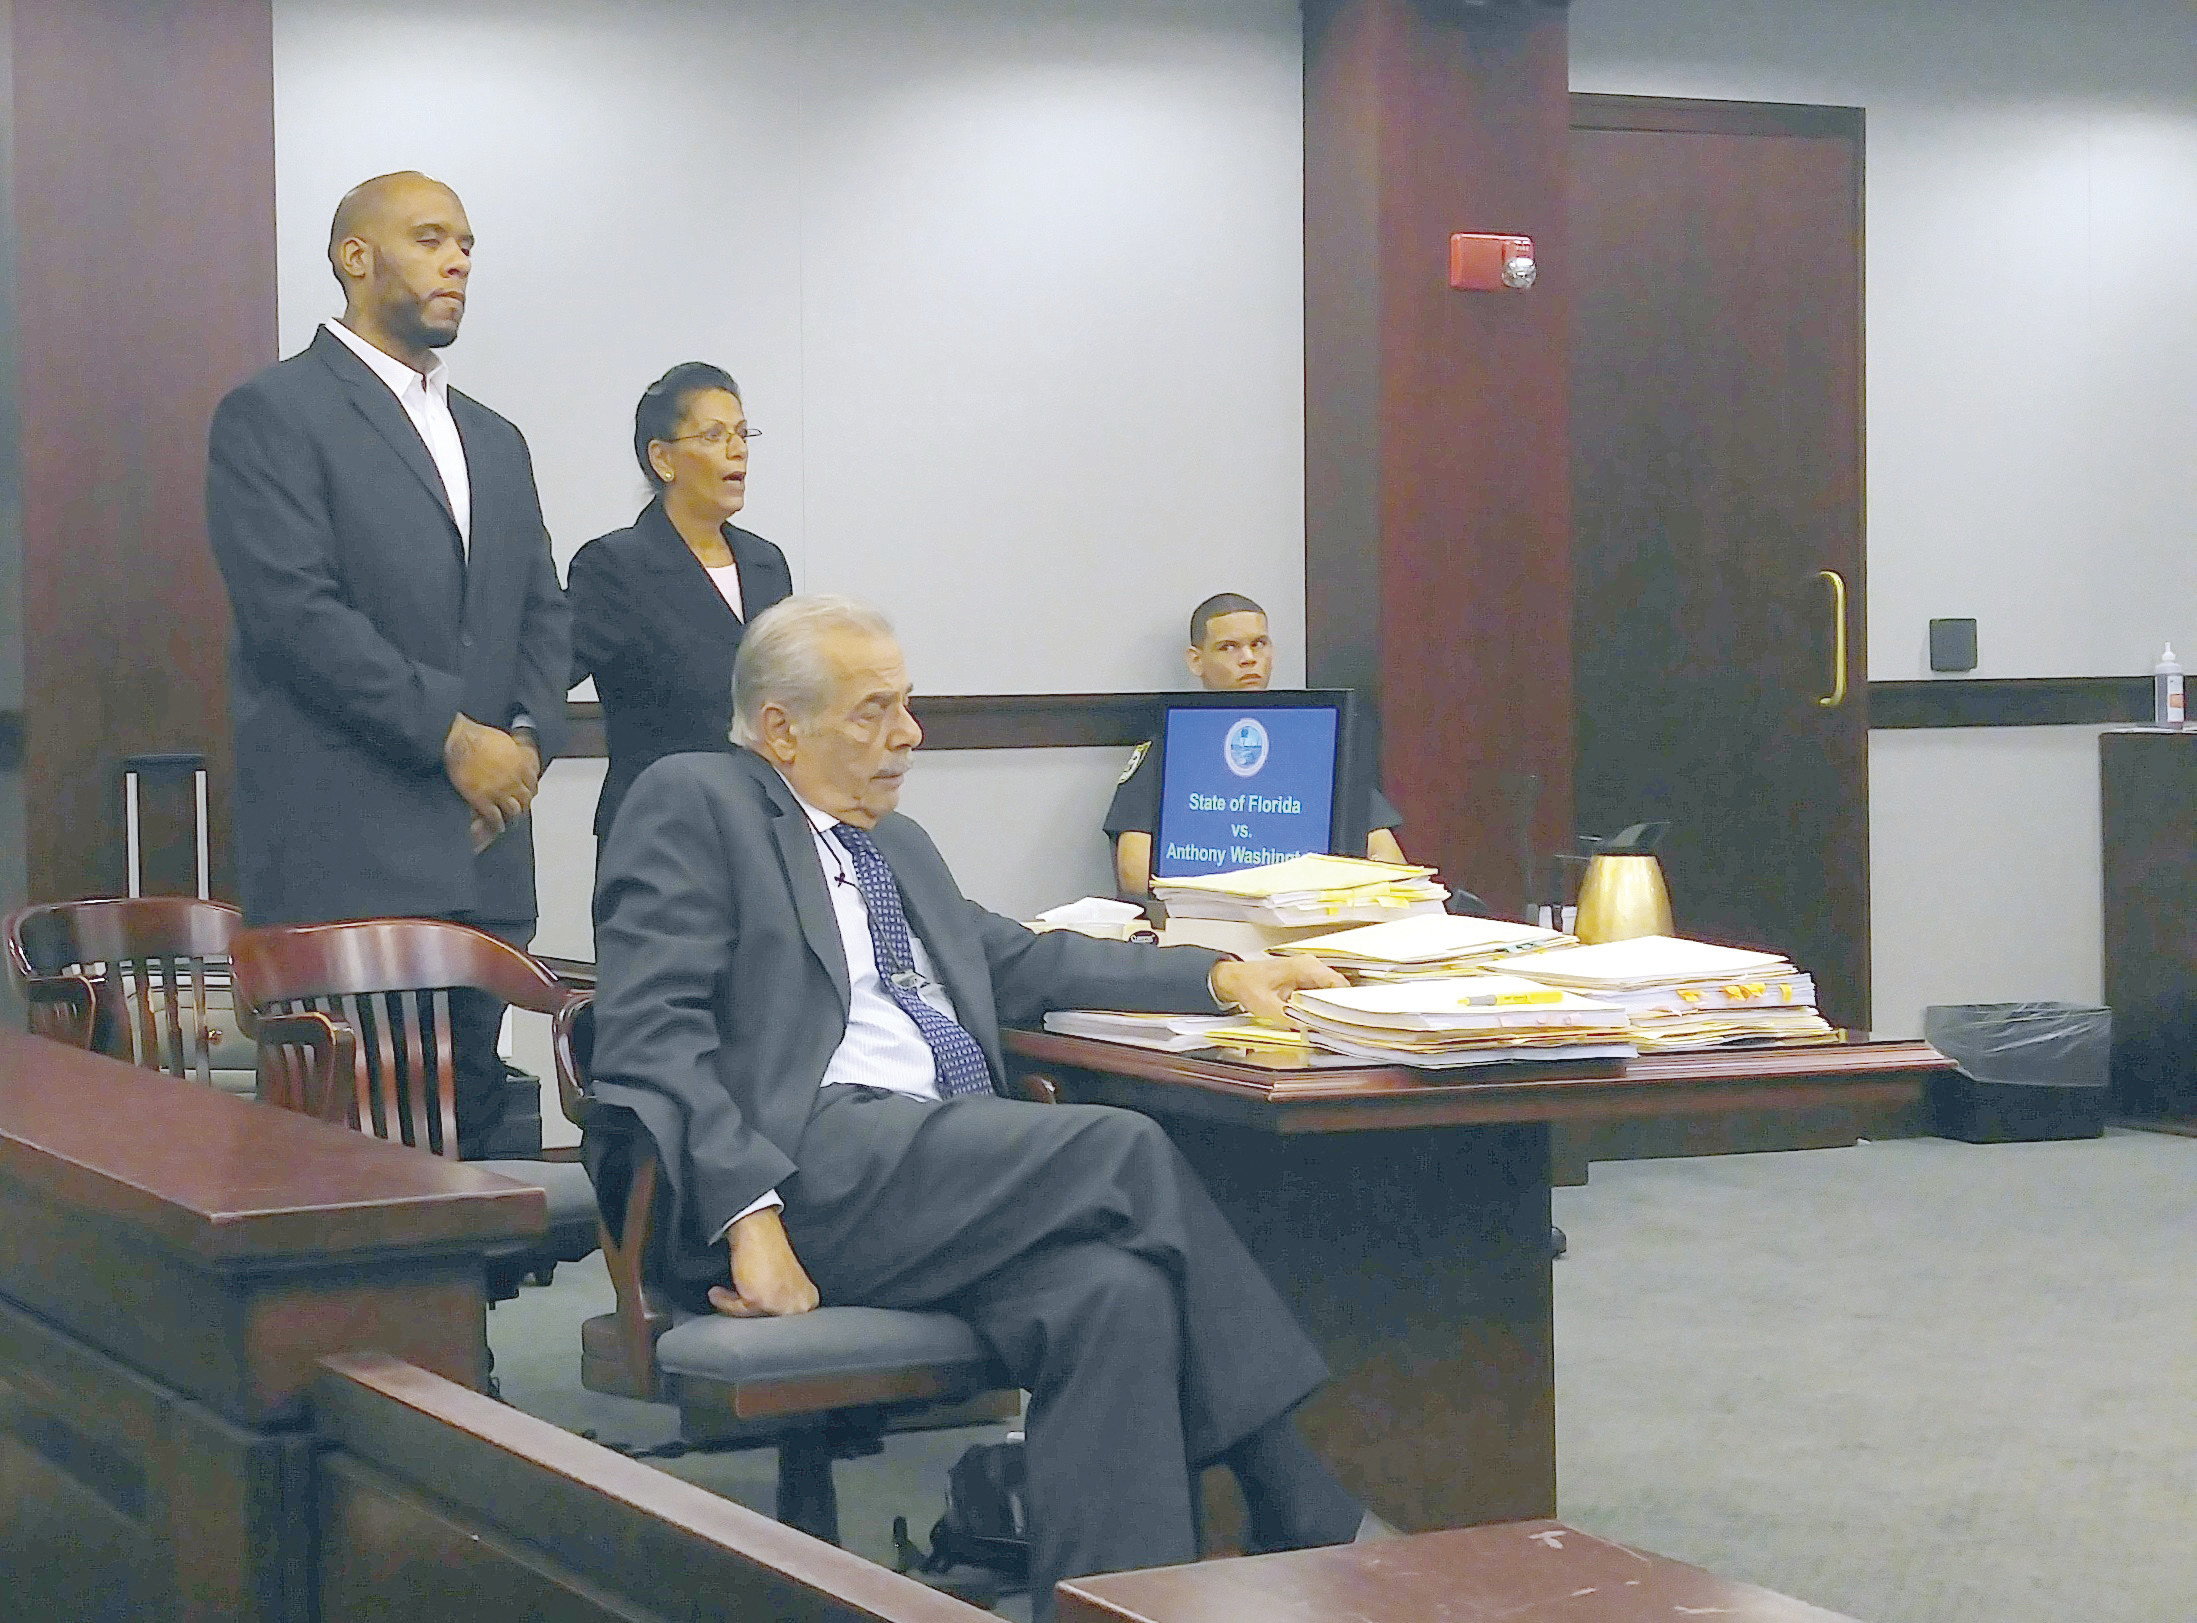 Defendant Anthony Washington (left) stands in court alongside his attorneys, Janis Warren and Tom Fallis.